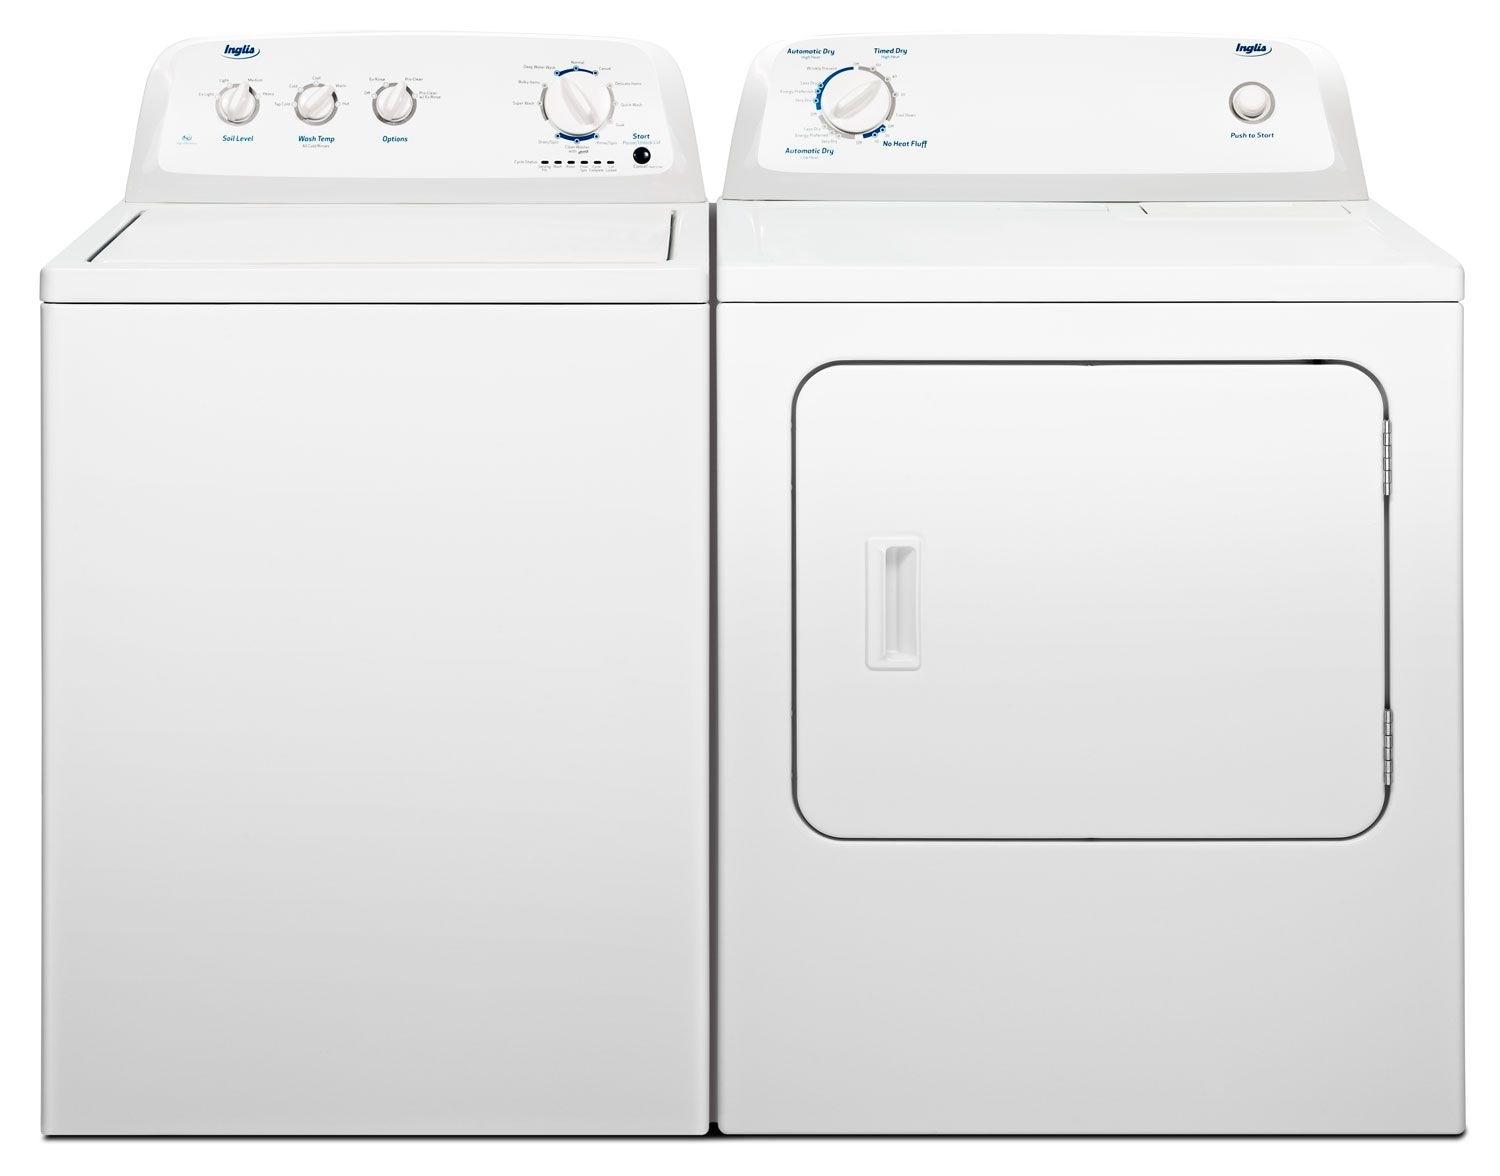 Washer And Dryer Dimensions Front Loading Inglis 42 Cu Ft Washer And 65 Cu Ft Dryer The Brick